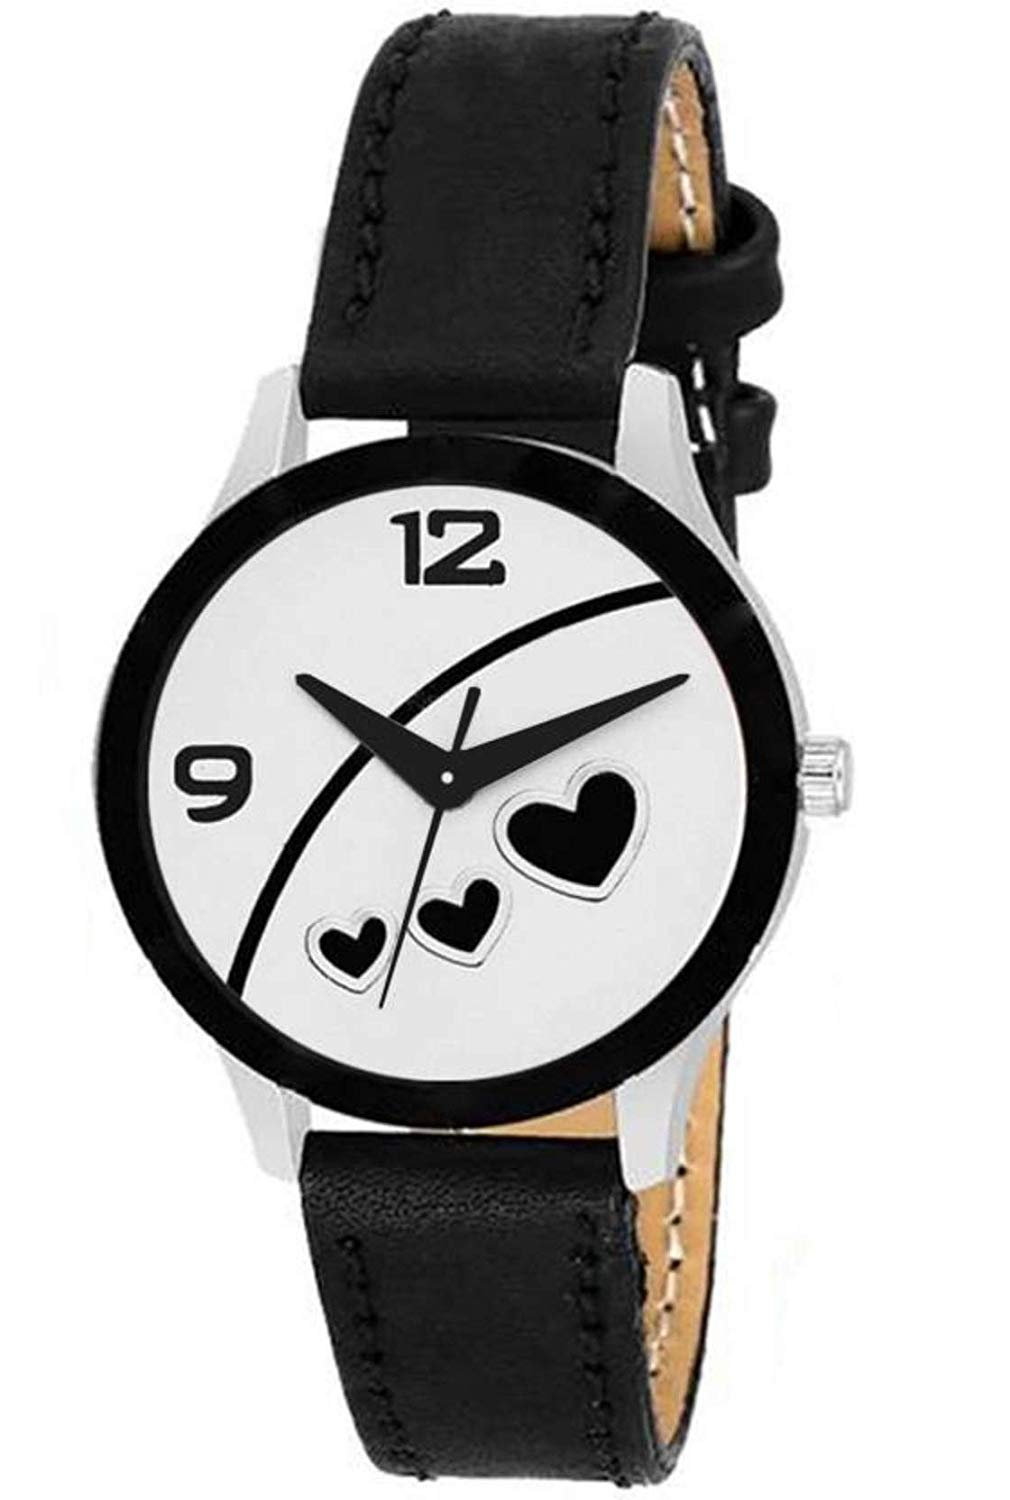 DealYEP Stylish Black Color Leather Strap Analog Luxury Fashion Watch for Women & Girls (Black Heart) Fashion Luxury Watch Series Watch - for Girls DY98